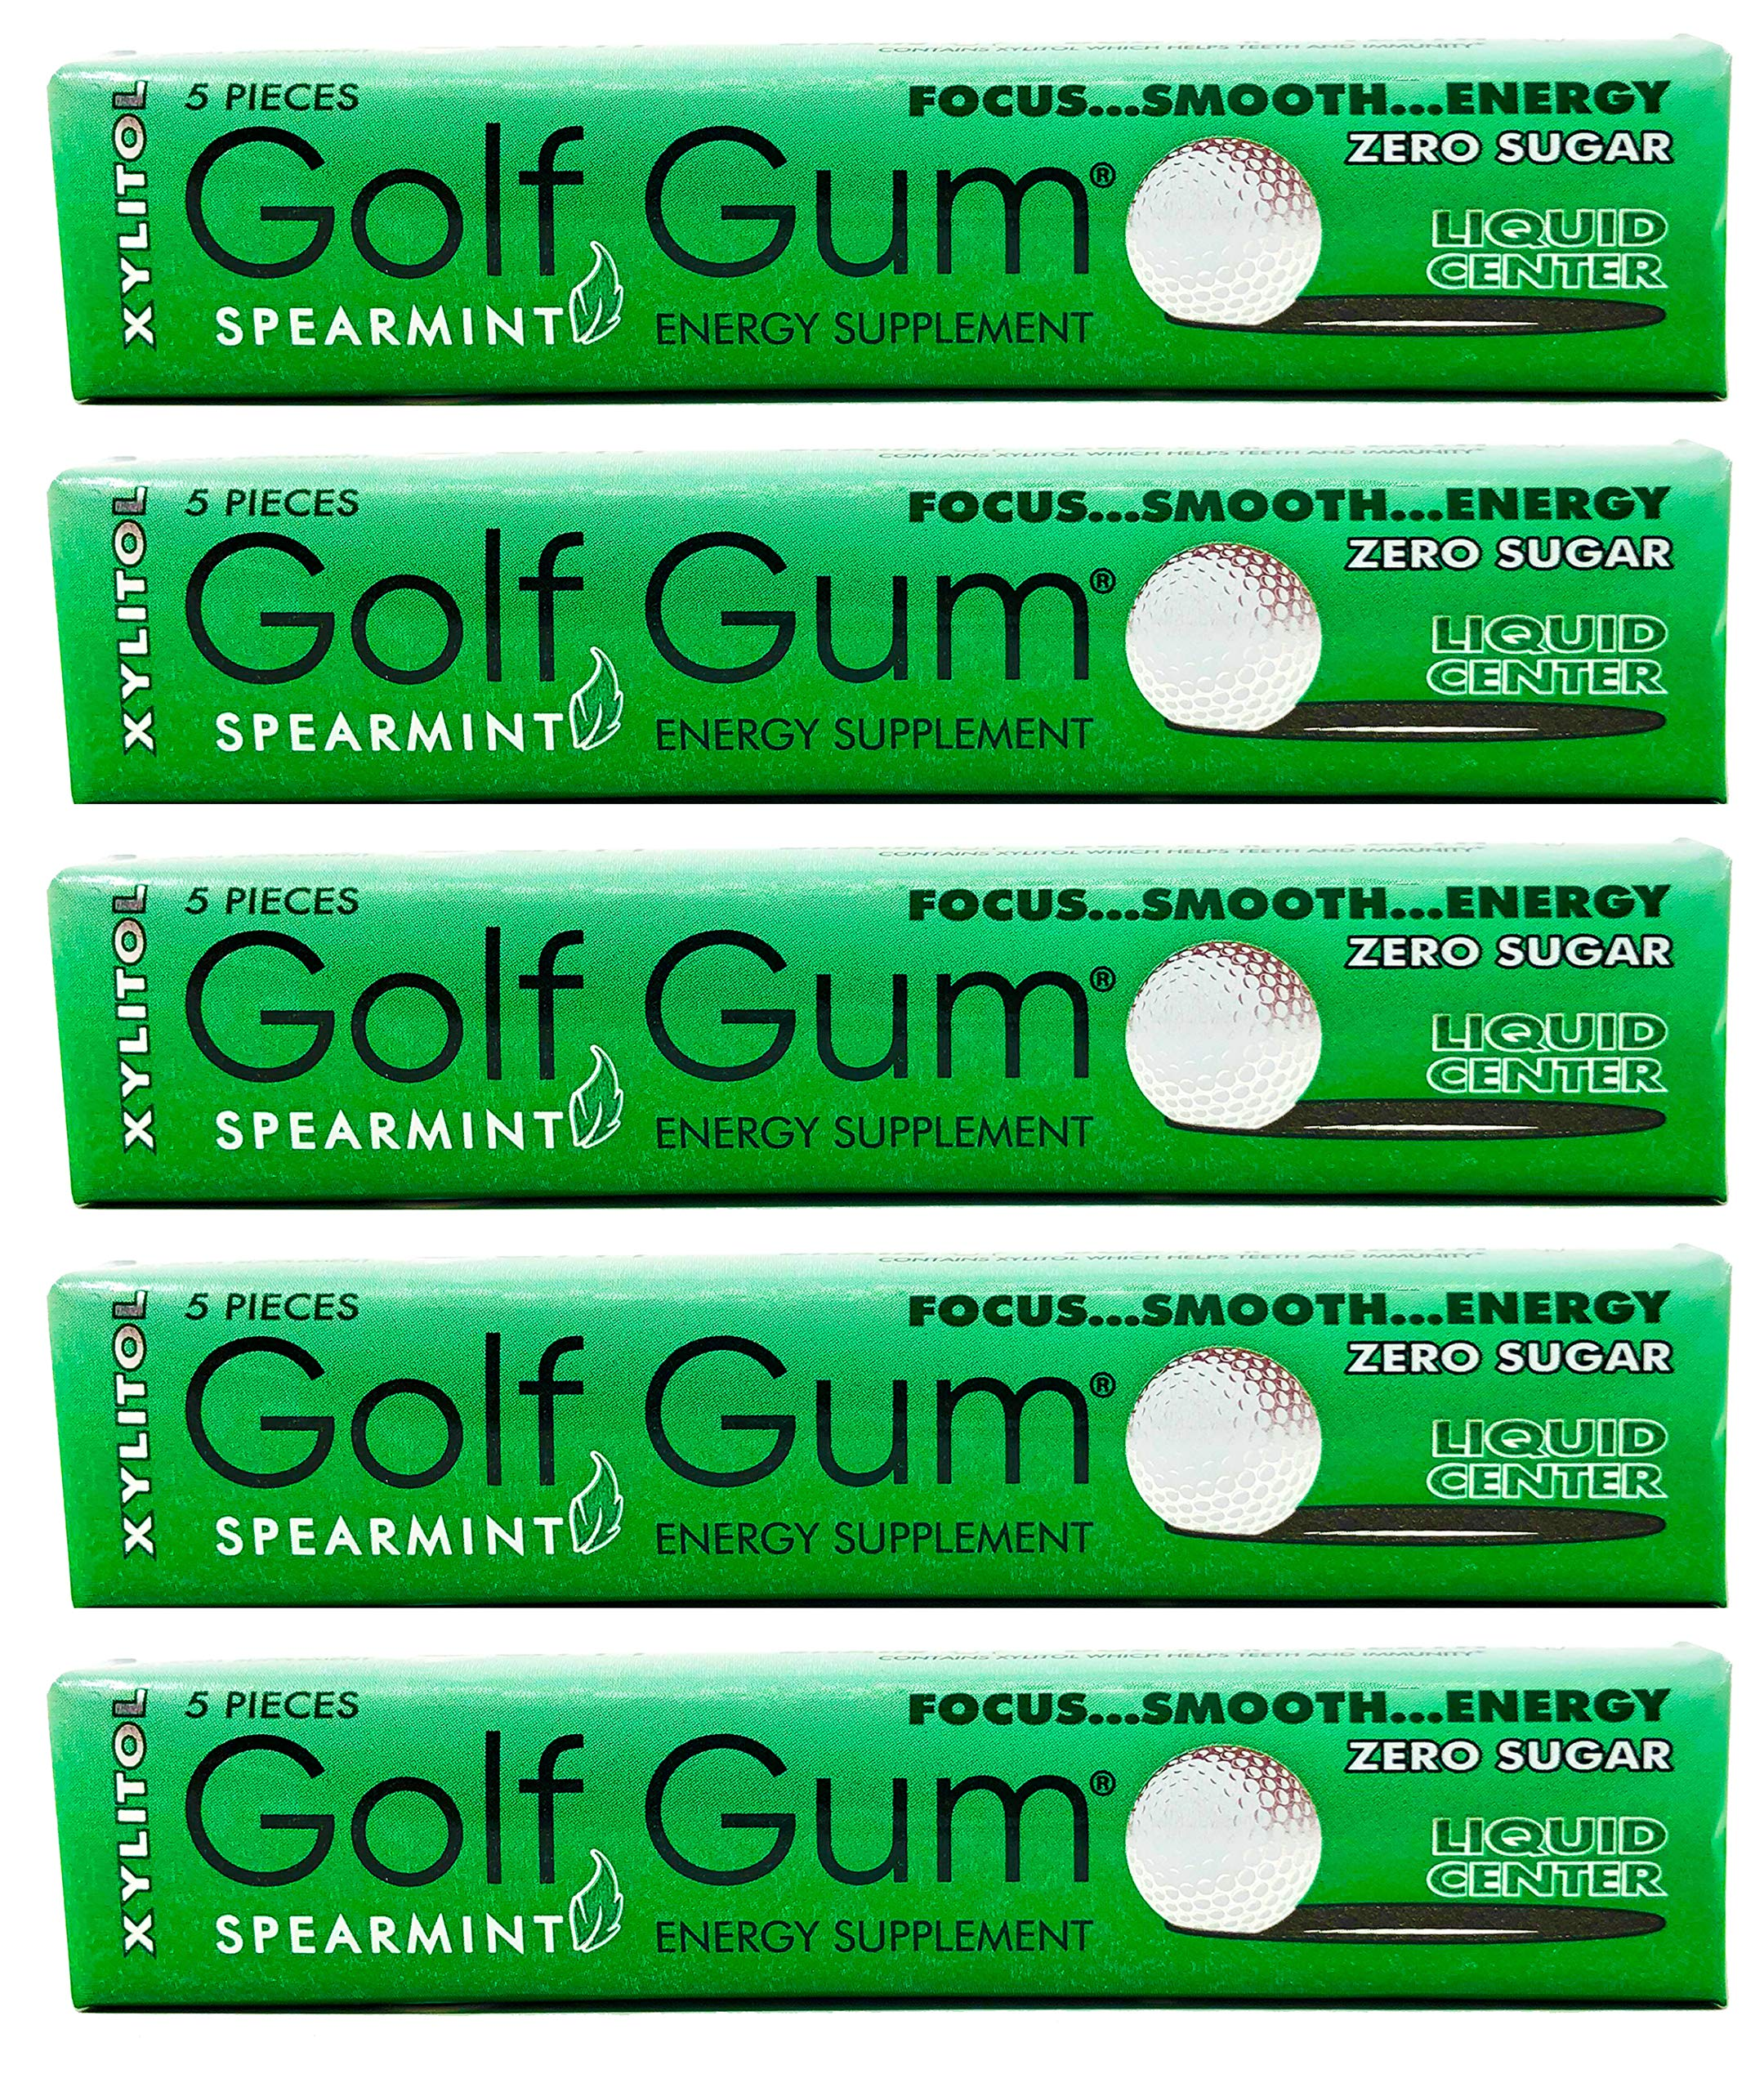 Golf Gum - The Golfers Gum - Liquid Core Xylitol Gum - Sugar-Free, Aspartame-Free, Caffeinated Gum - Spearmint - 5 Pieces of Gum Per Pack (5 Pack) by Golf Gum